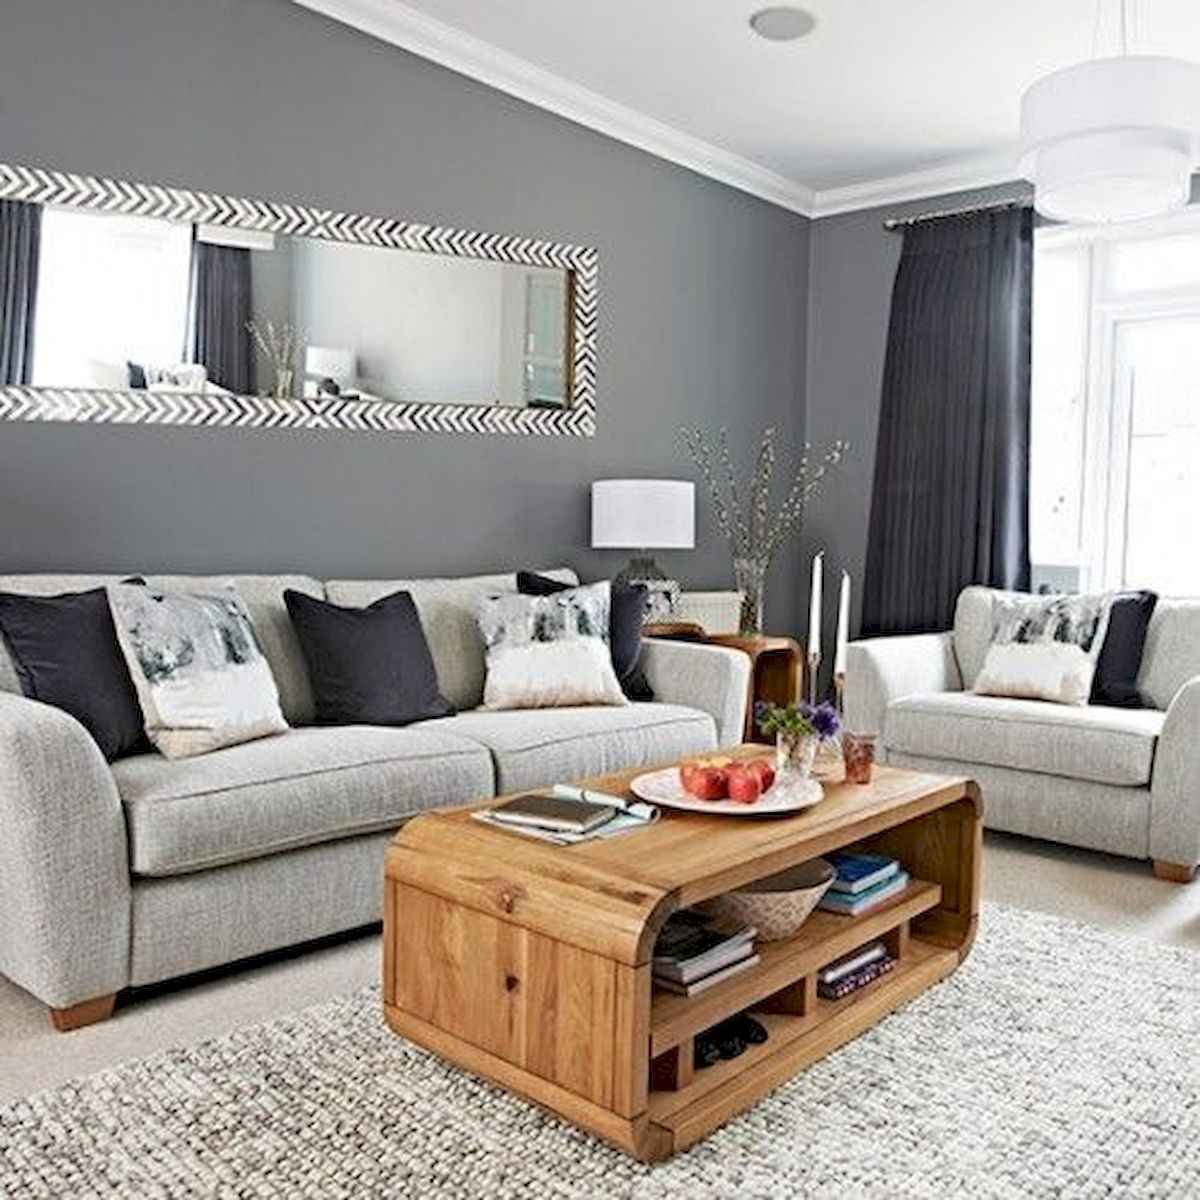 70 Stunning Grey White Black Living Room Decor Ideas And Remodel (22)